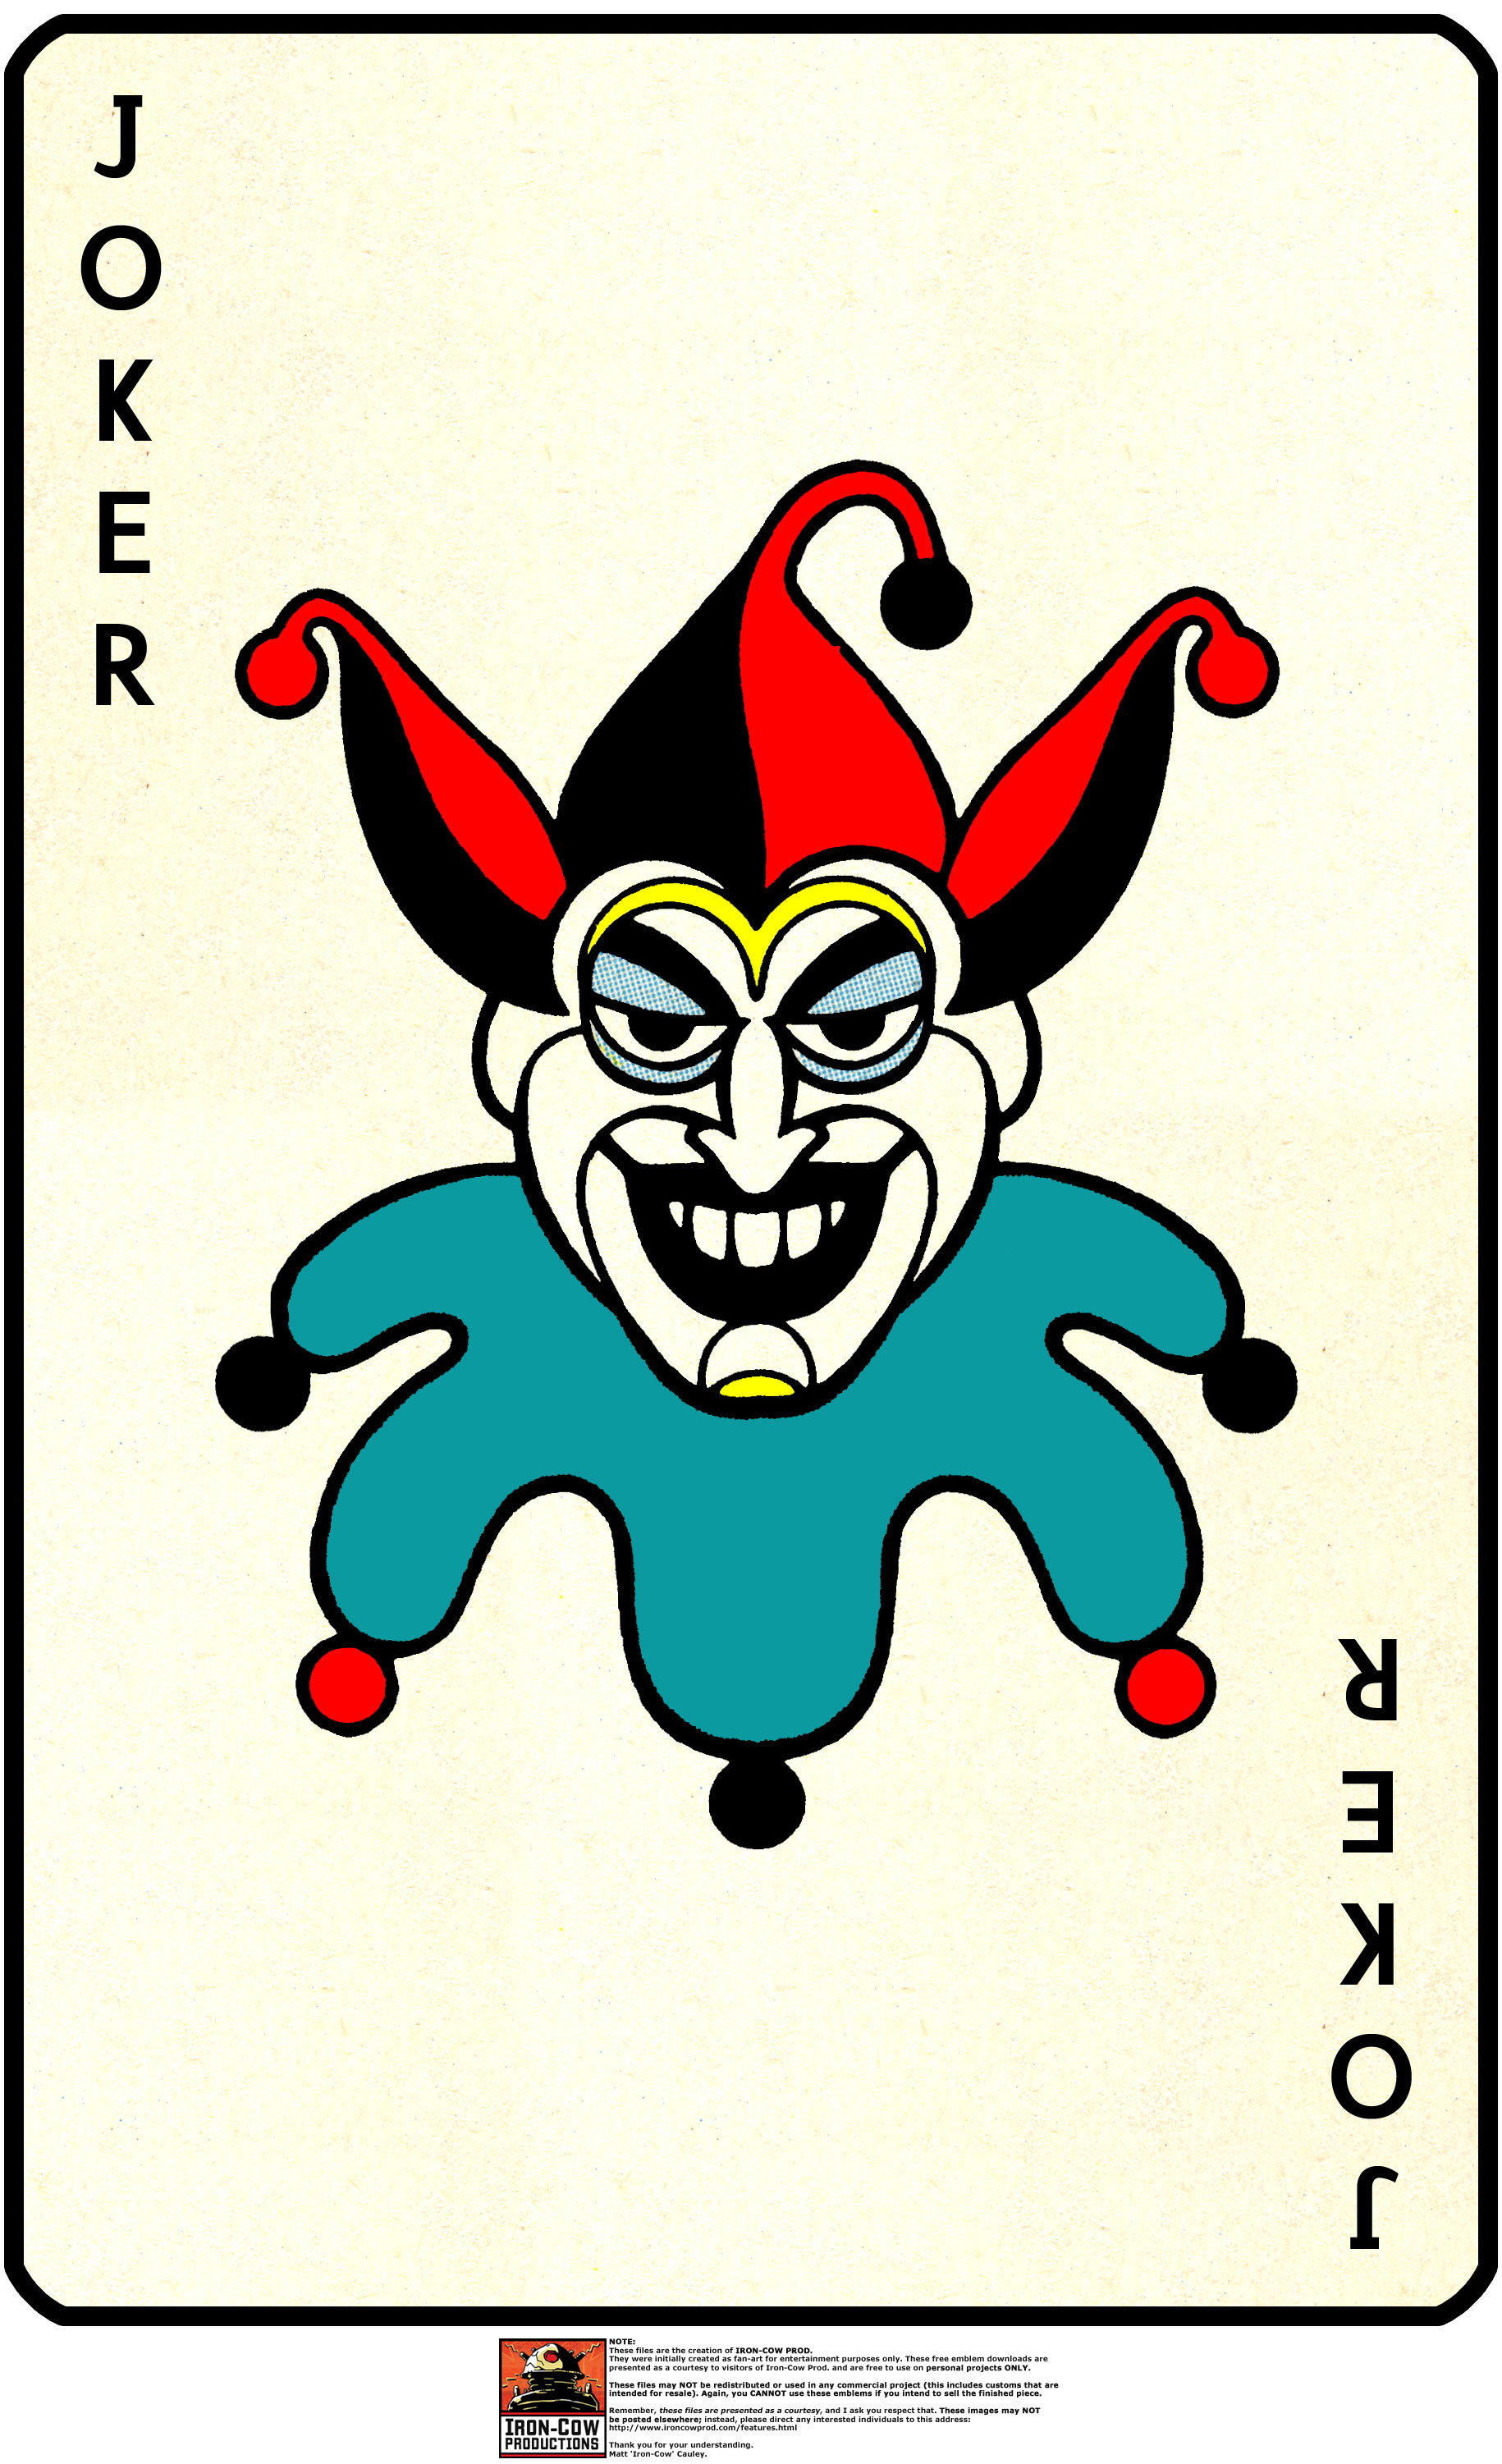 Joker clipart real #13